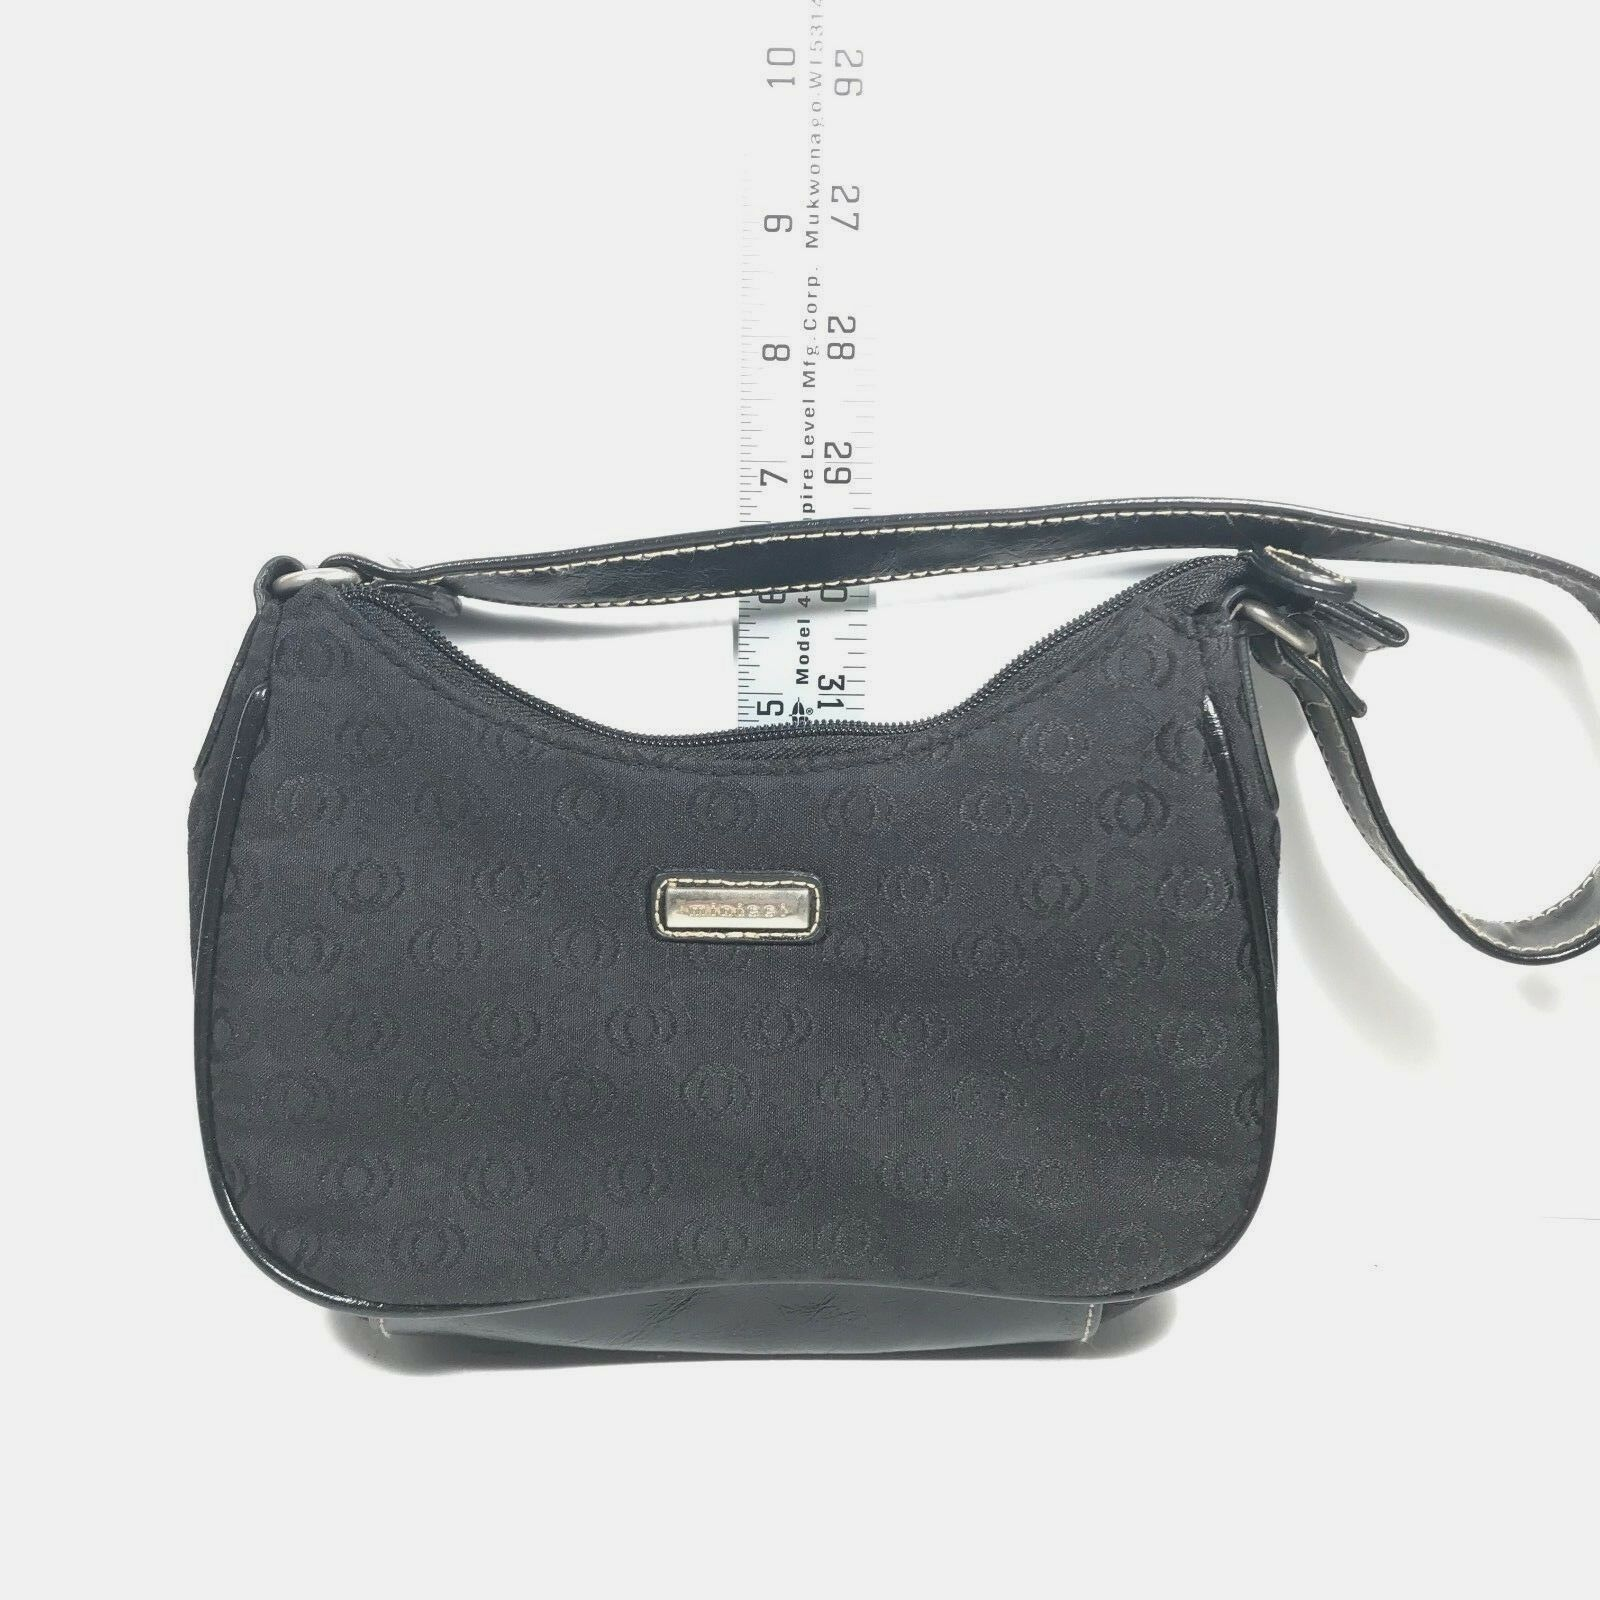 Minicci Purse In Black Color Hand Bag Insider and Outside Clean Good Style Bag